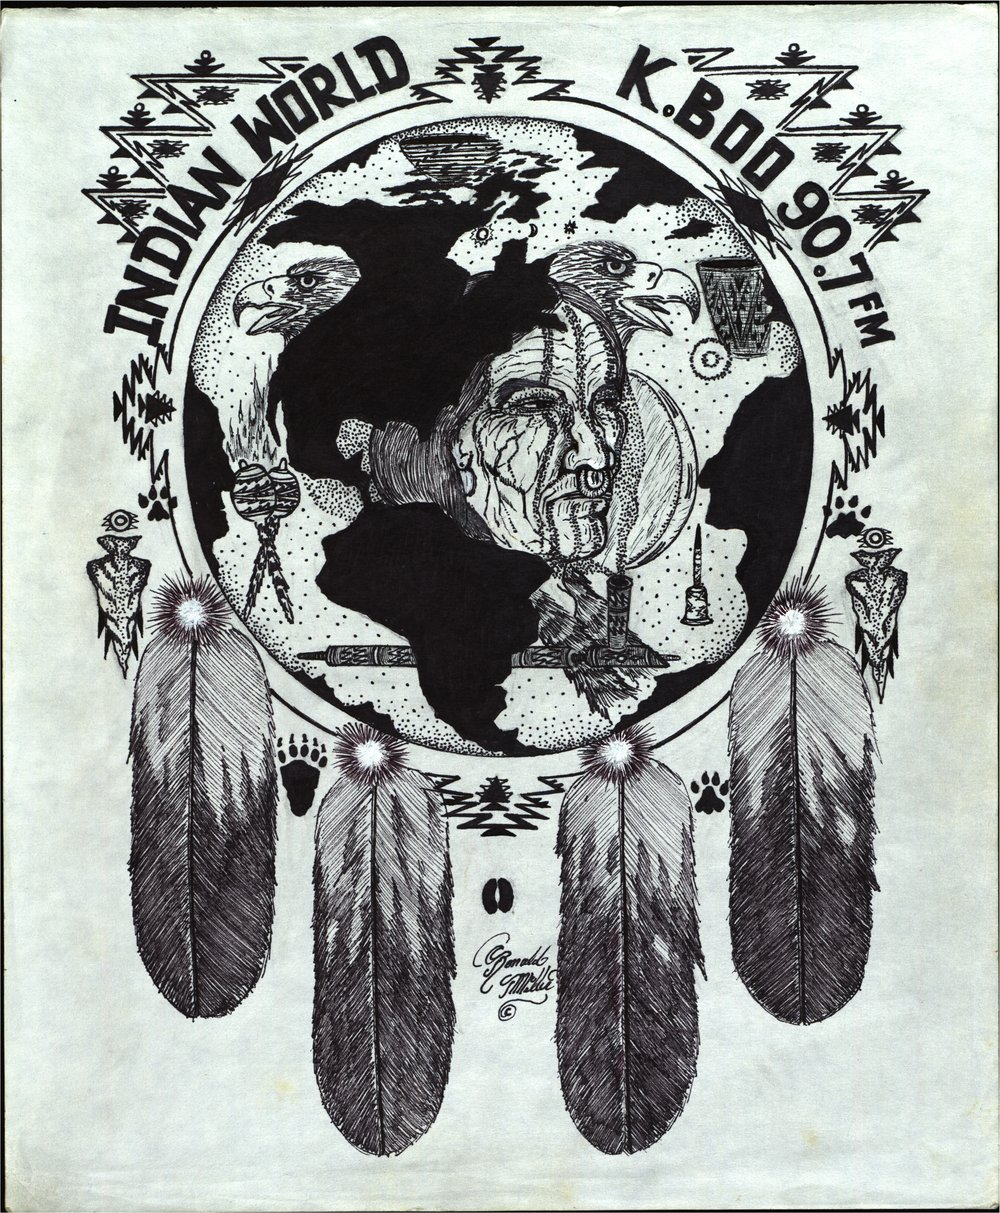 KBOO_Posters_OS_IndianWorld.jpg